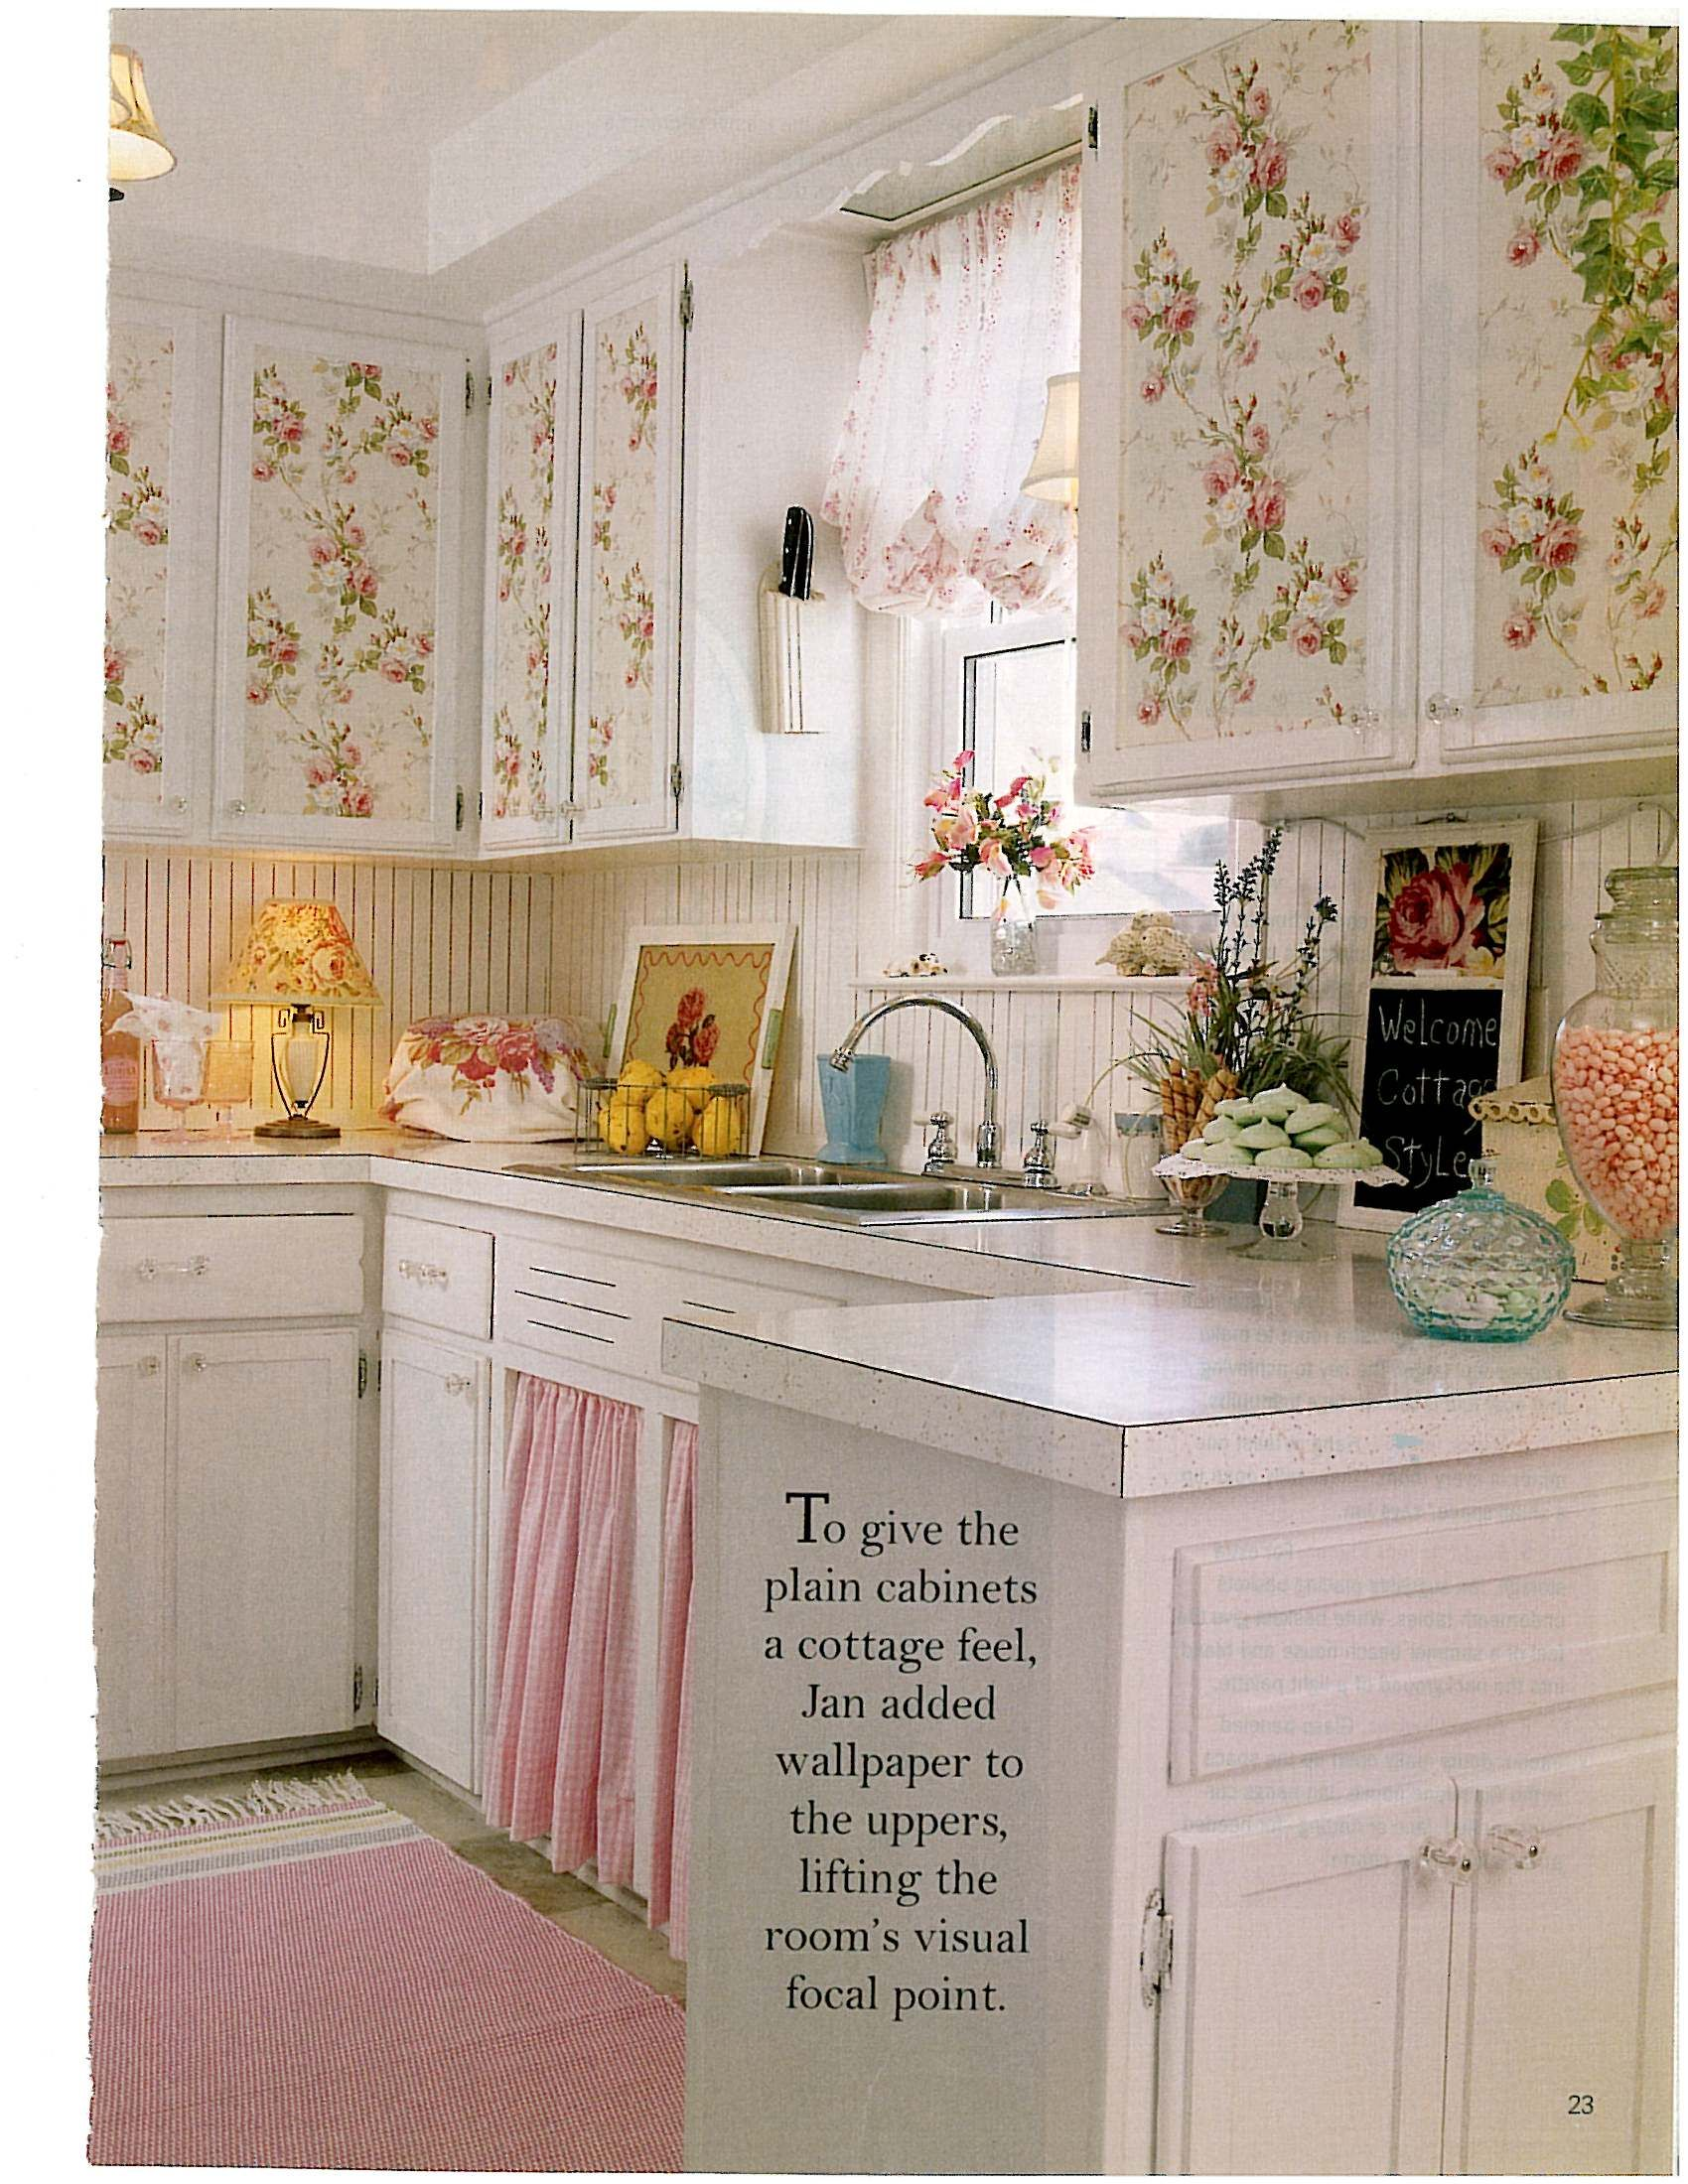 Floral wallpaper with roses on cupboards attractive displays on